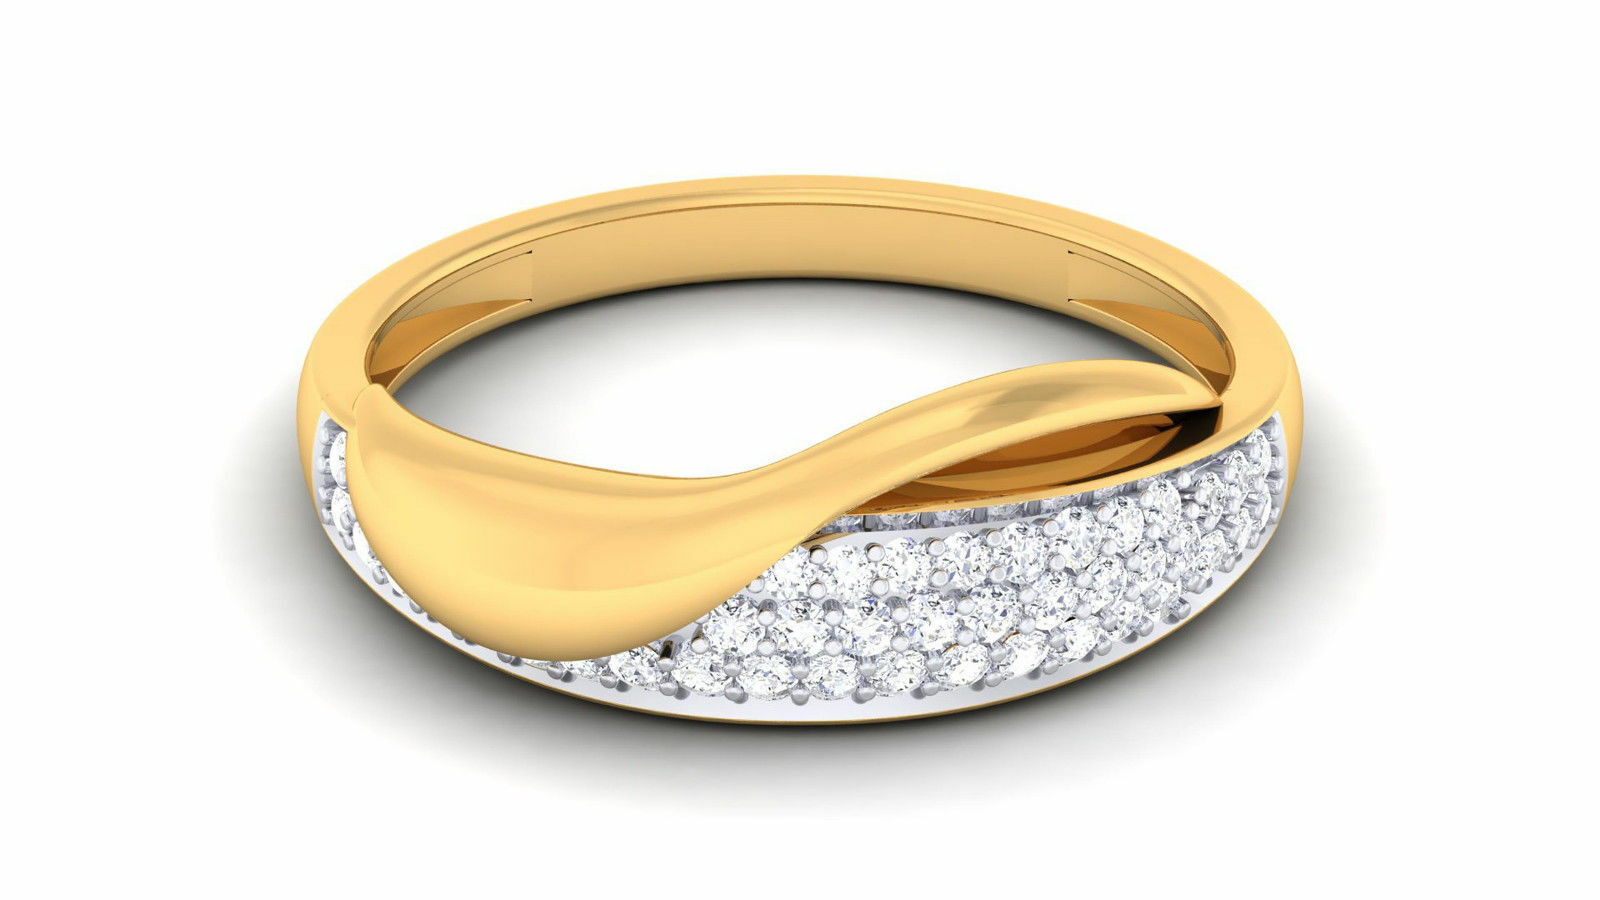 Pave 0.37 Cts Round Brilliant Cut Diamonds Anniversary Ring In Hallmark 18K gold